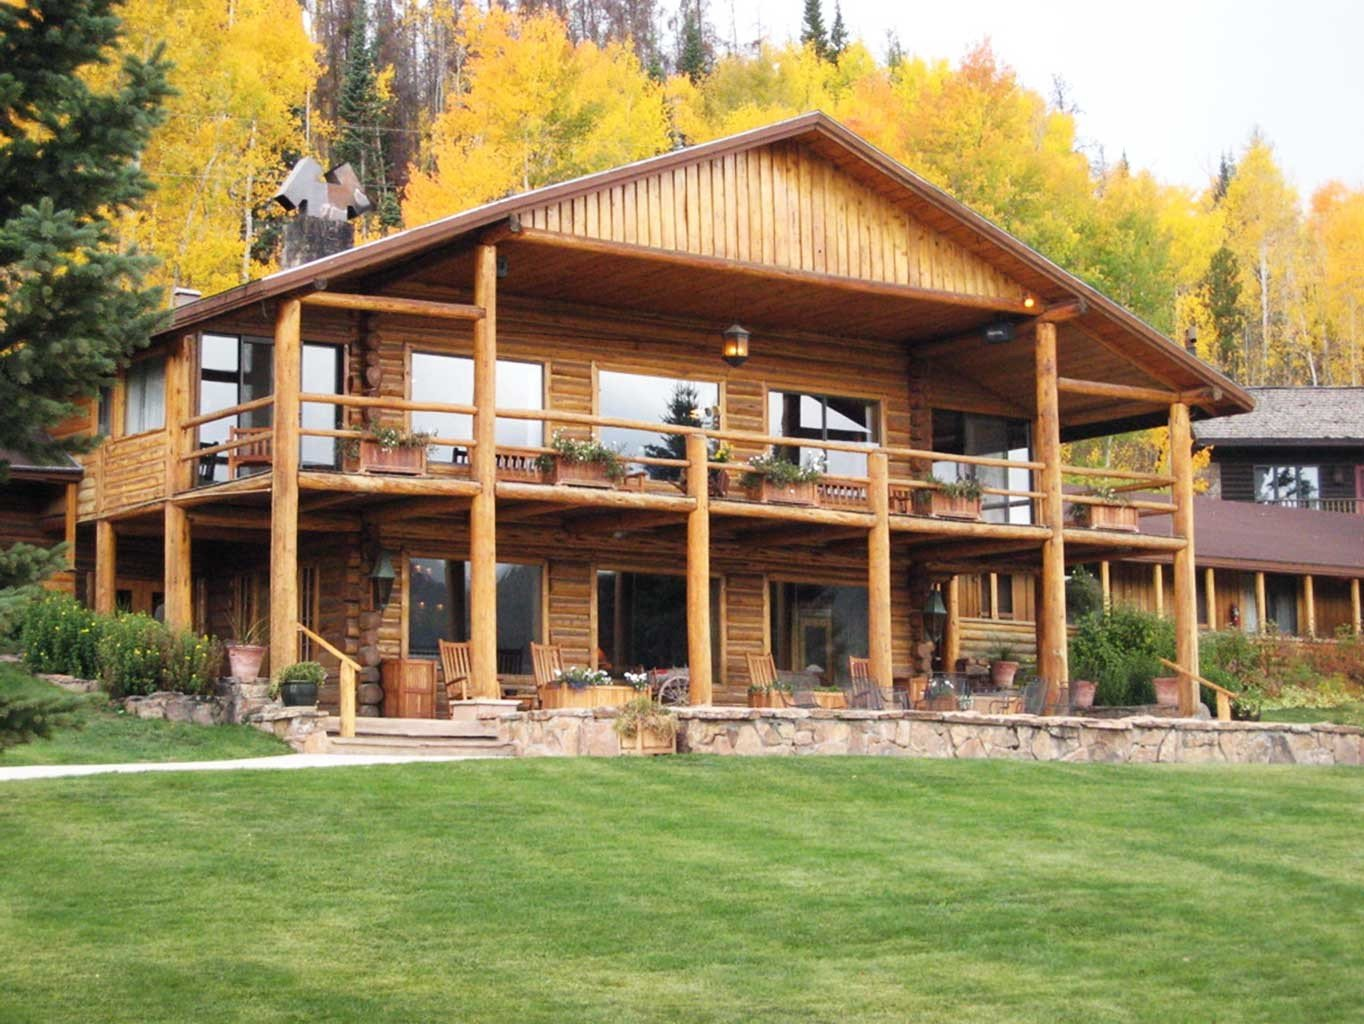 Country Grounds Mountains Ranch Rustic Scenic views grass tree building log cabin property house home cottage lawn outdoor structure pavilion backyard farmhouse